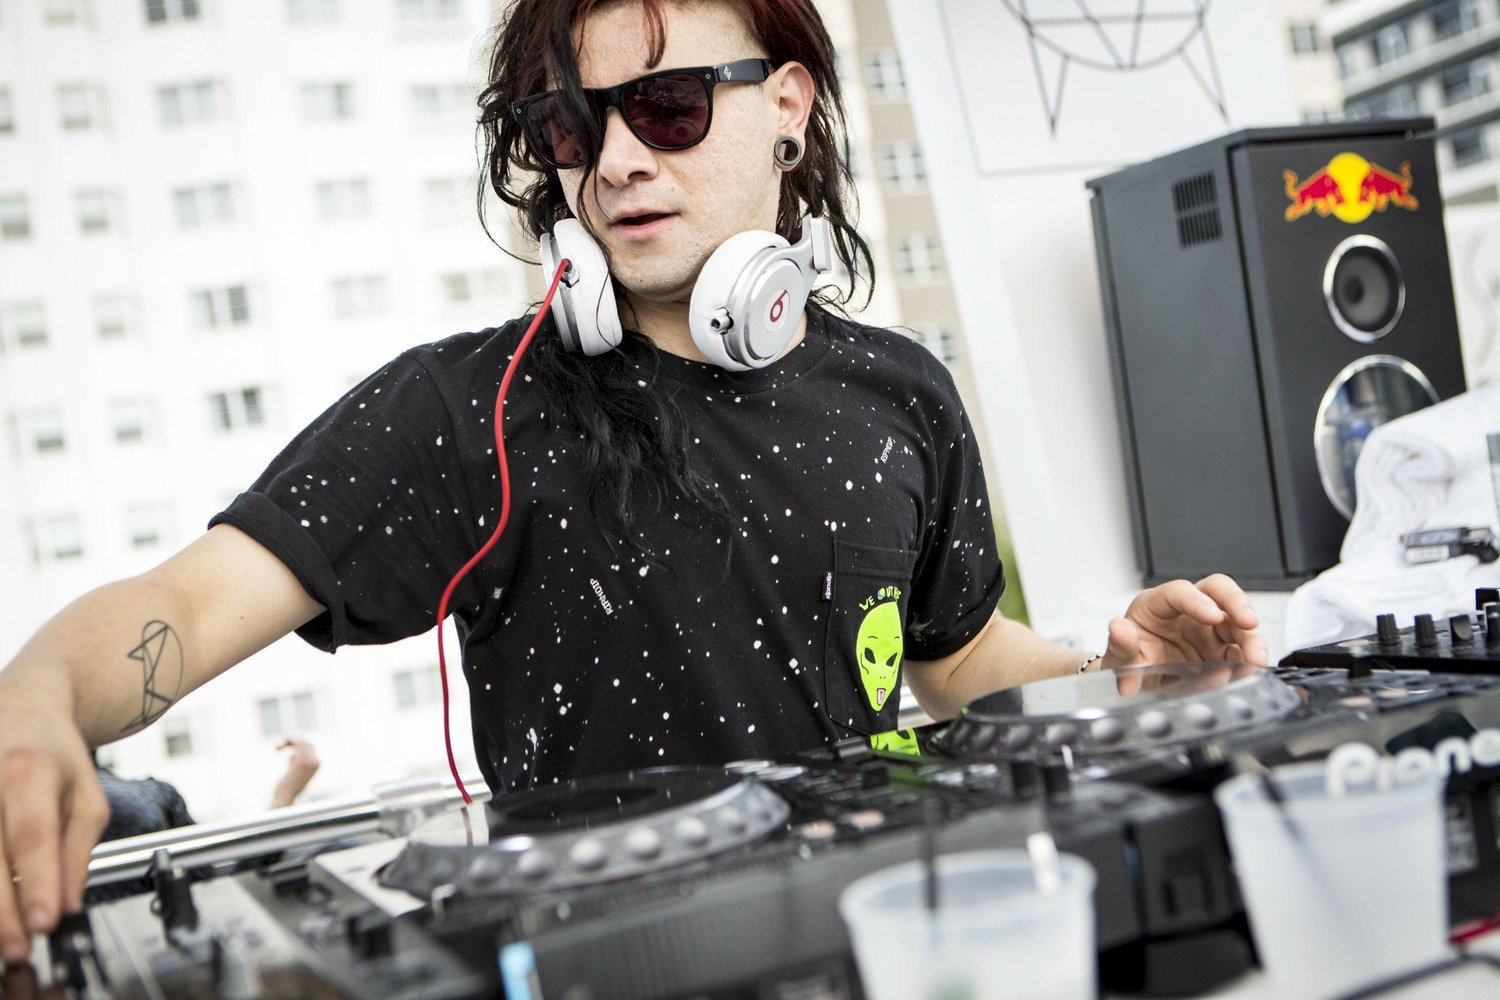 Skrillex Backgrounds, Compatible - PC, Mobile, Gadgets| 1500x1000 px